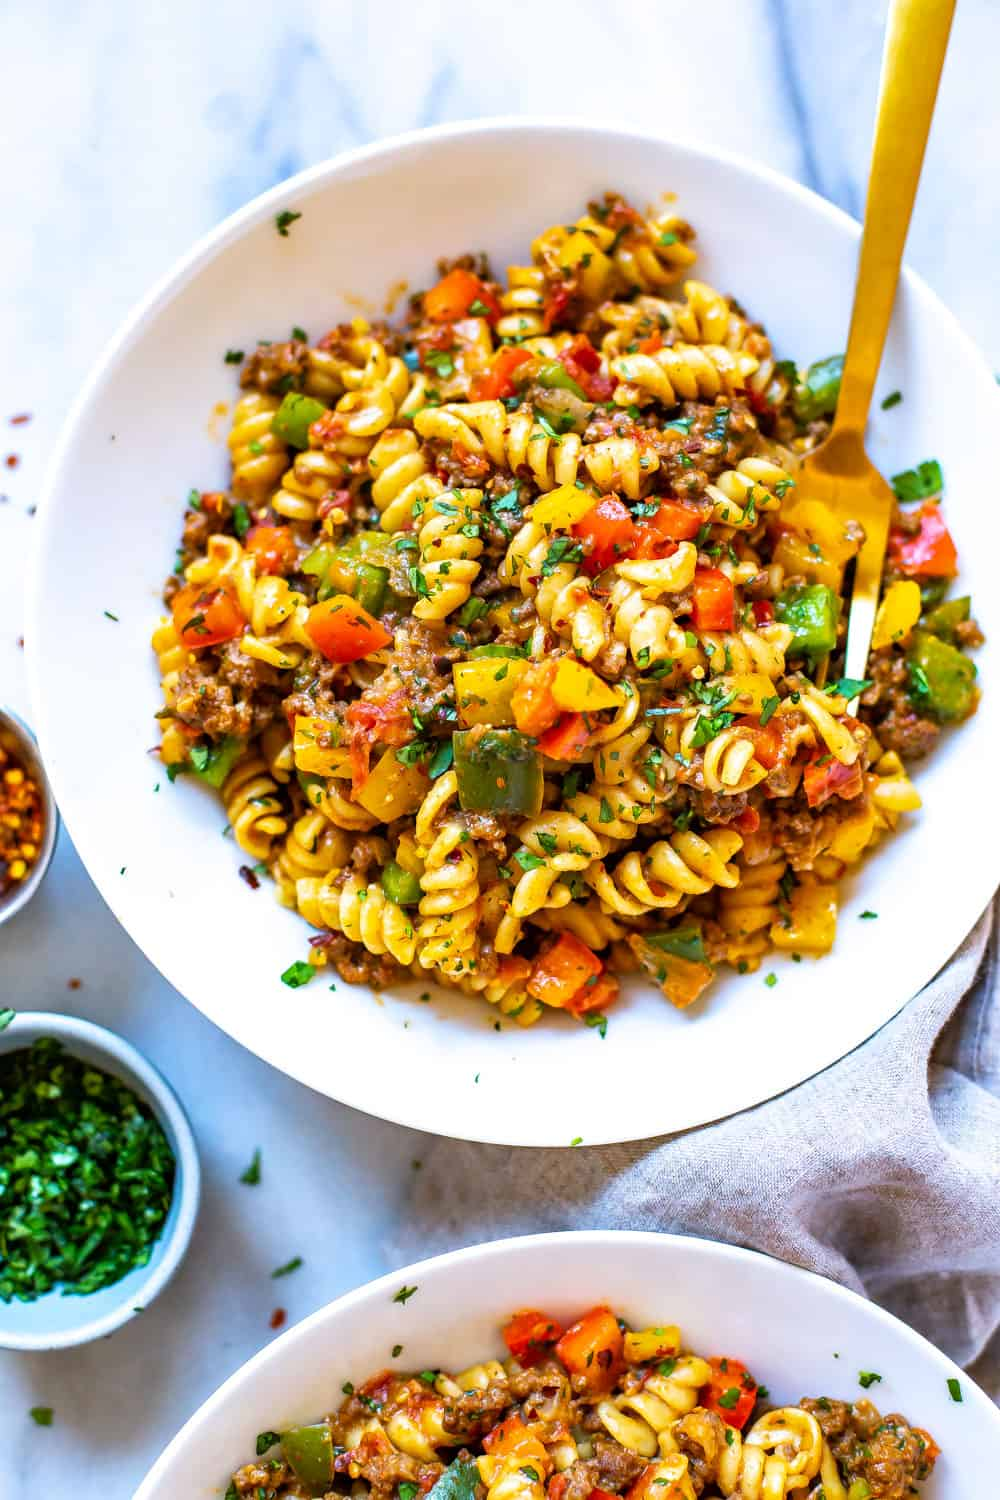 Instant Pot Taco Pasta Eating Instantly